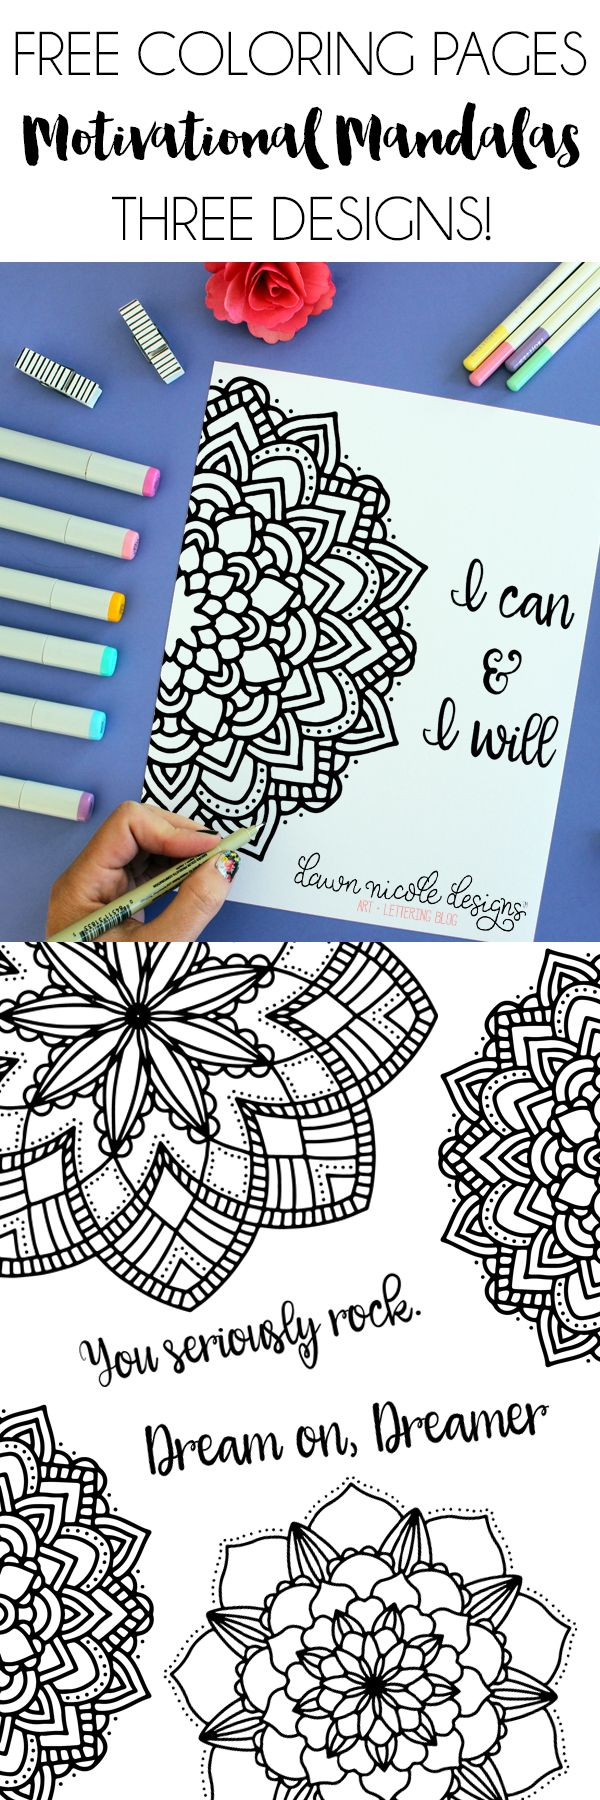 best 25 free coloring pages ideas on pinterest free